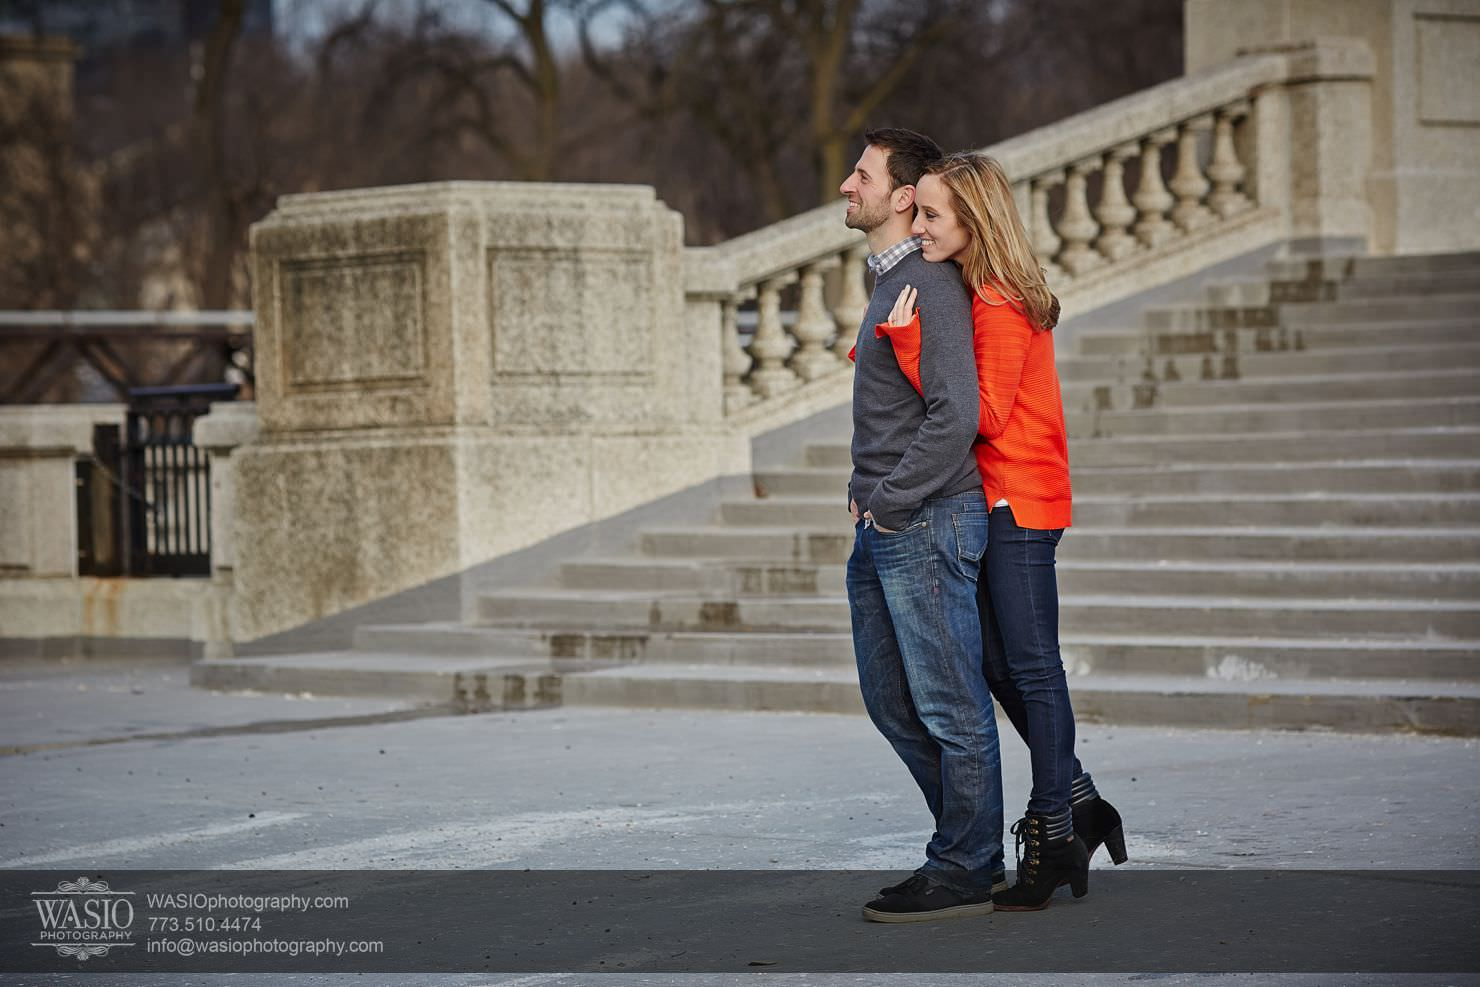 014_Chicago-Winter-Engagement_Courtney-Danny Chicago Winter Engagement - Courtney + Danny